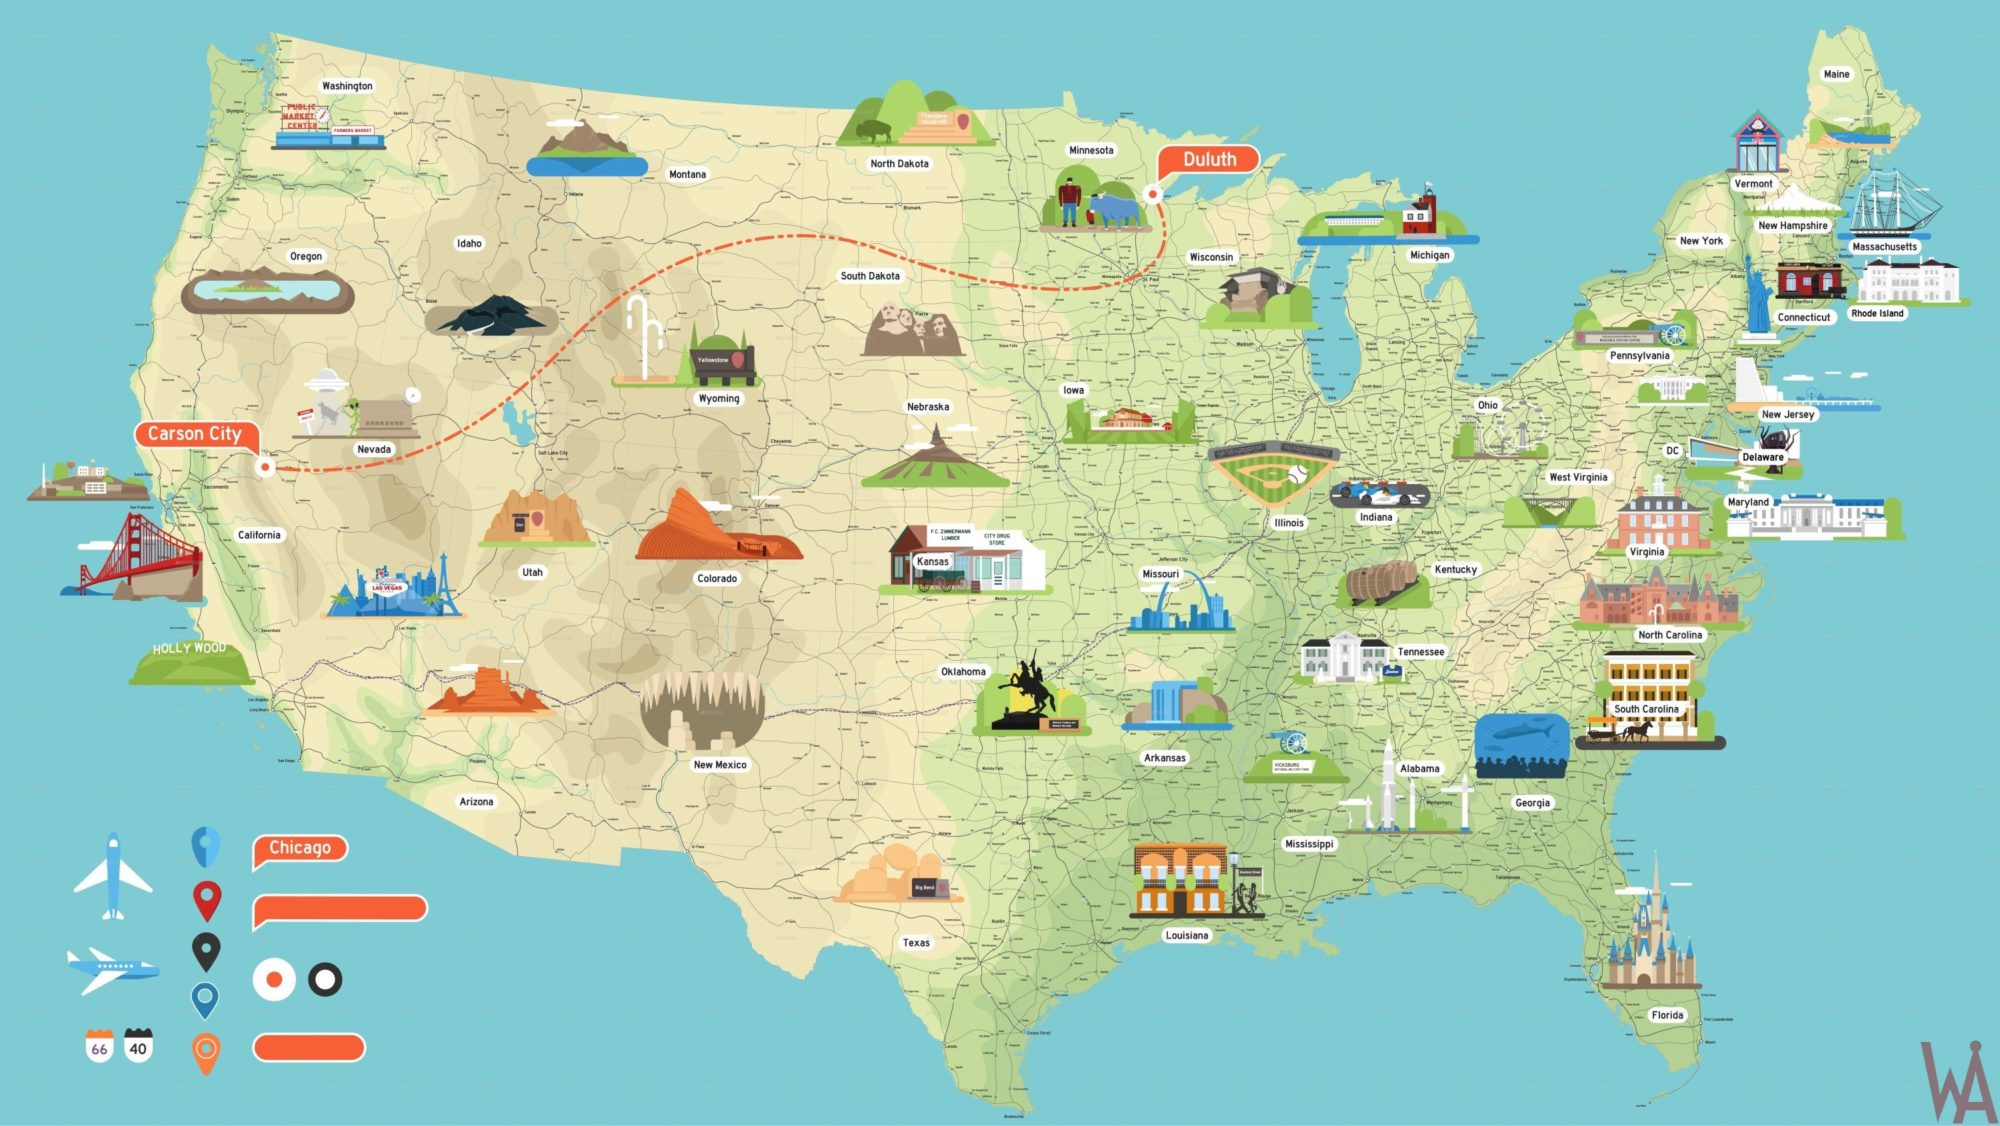 High Quality Tourist attraction map of the USA | WhatsAnswer